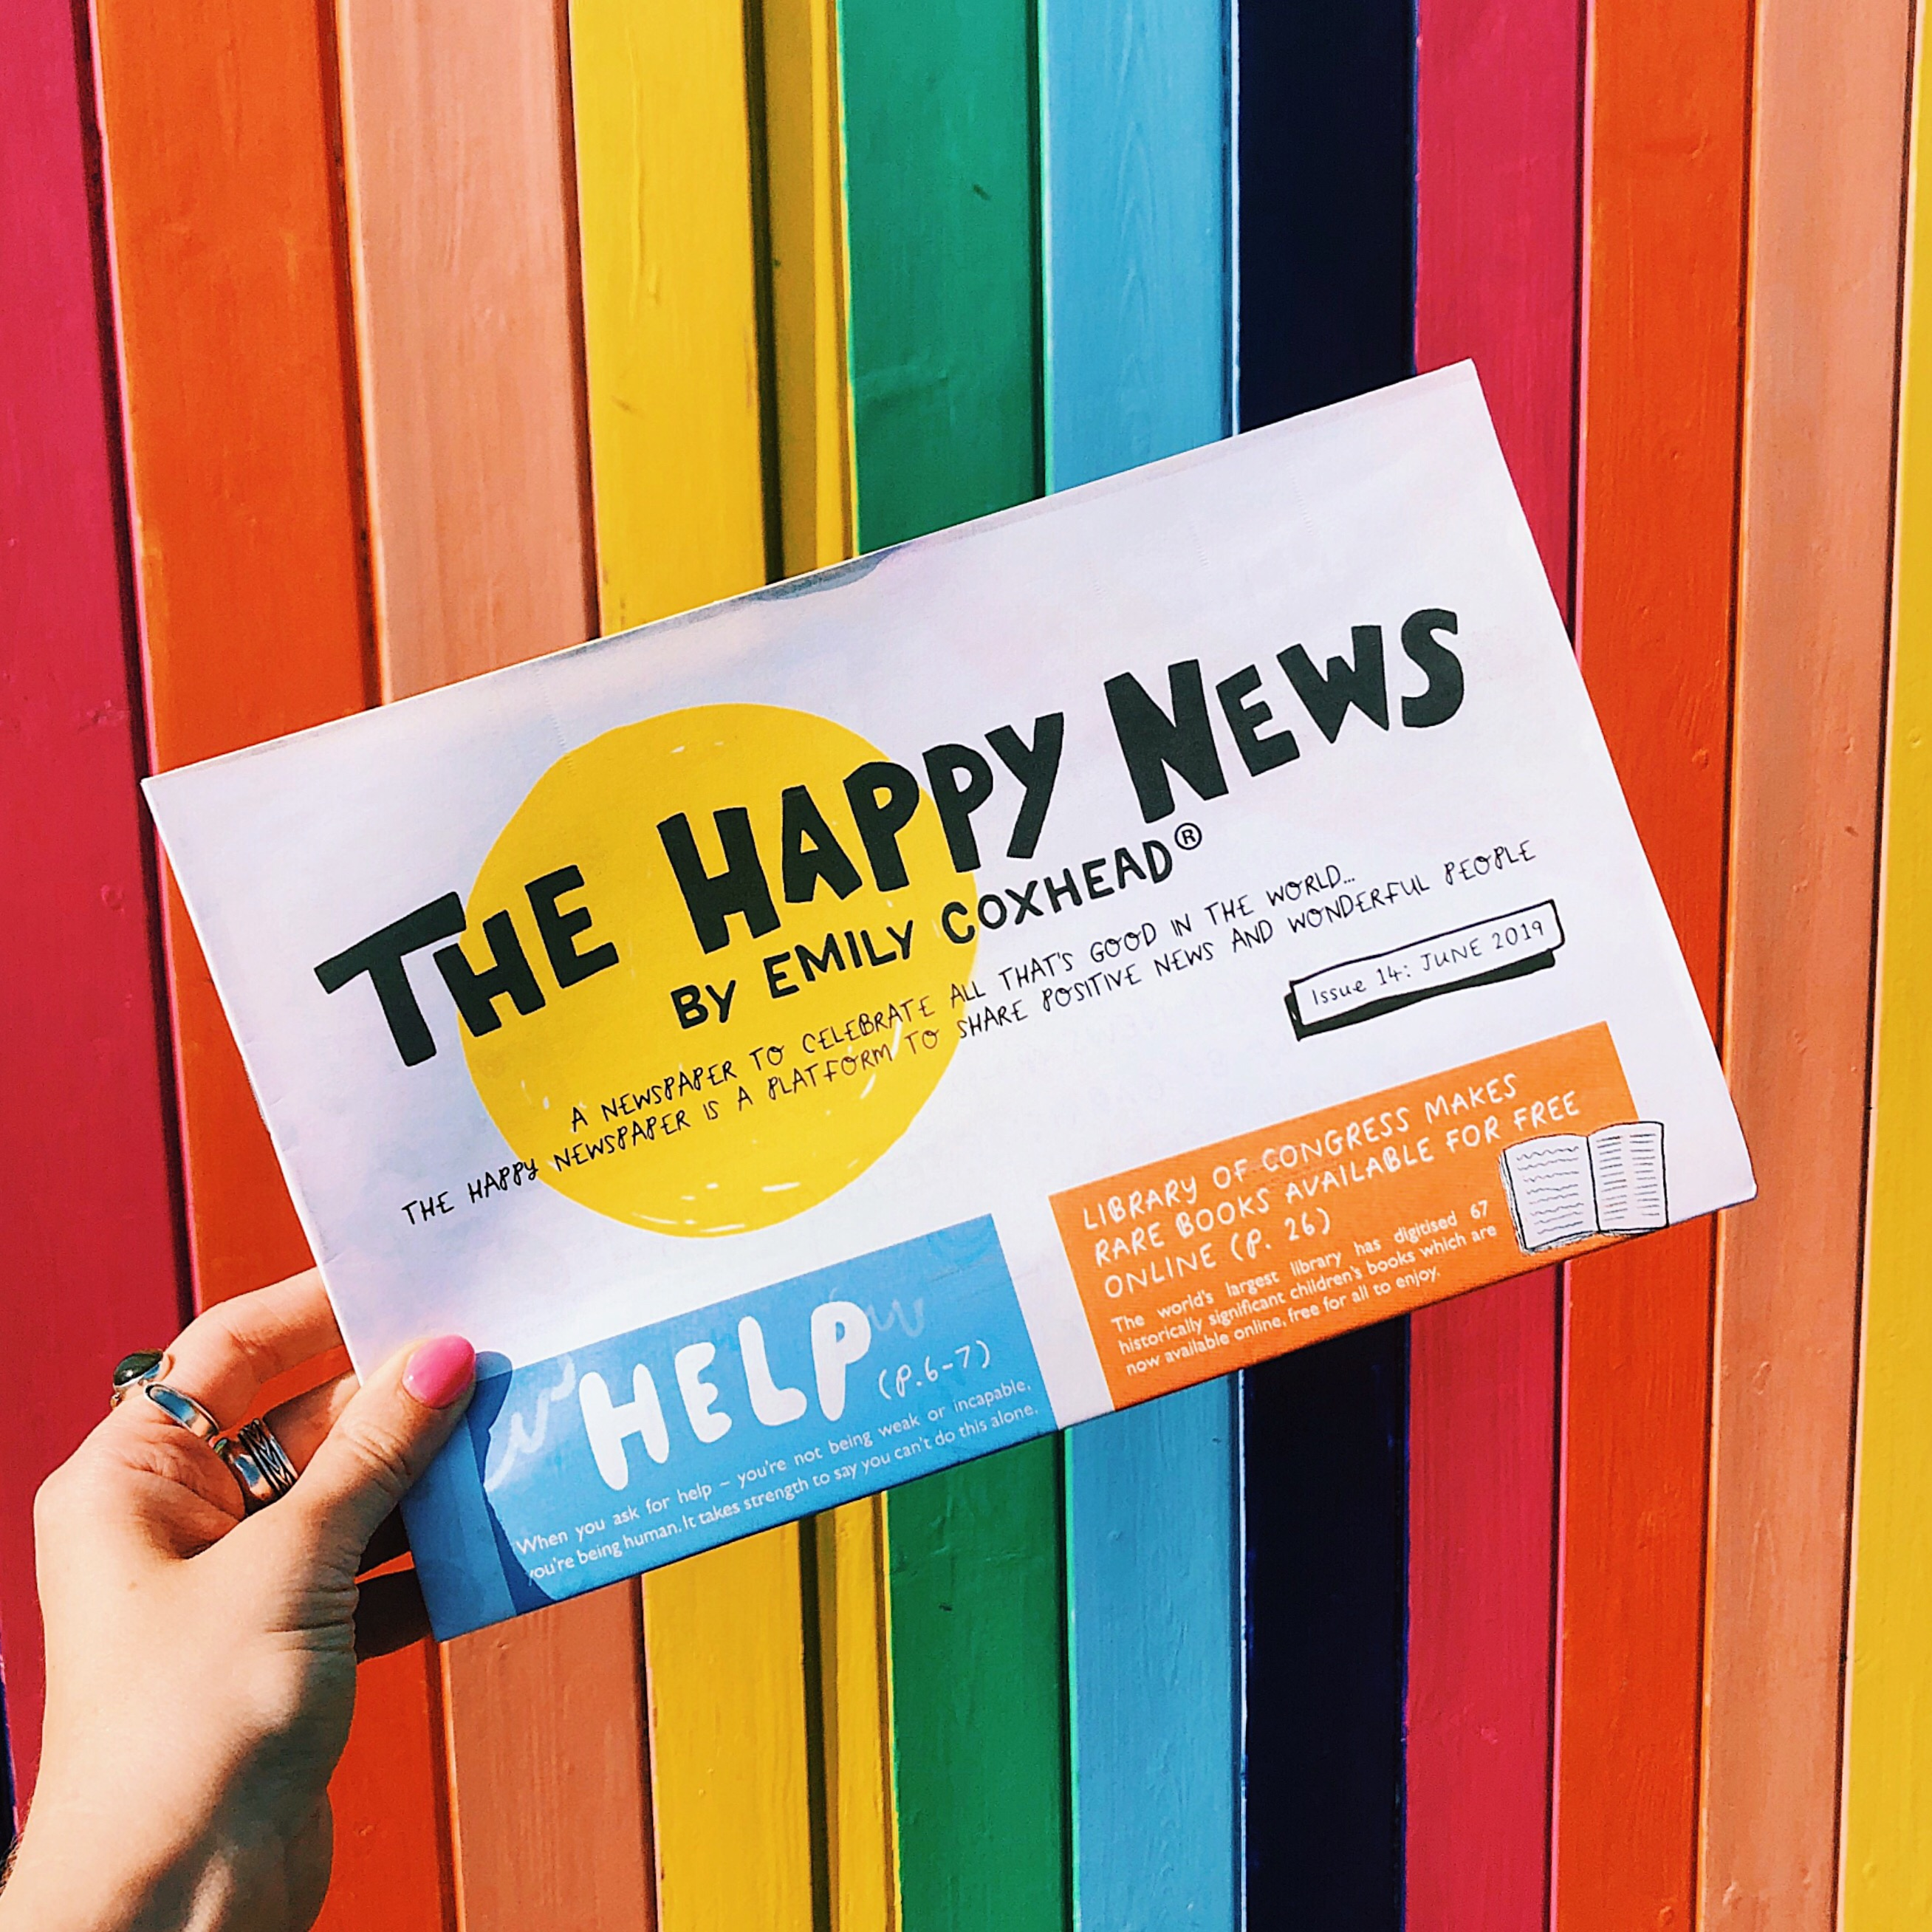 Above: The Earlybird team are to be giving out tote bags containing a free copy of The Happy Newspaper as part of its reopening activity.